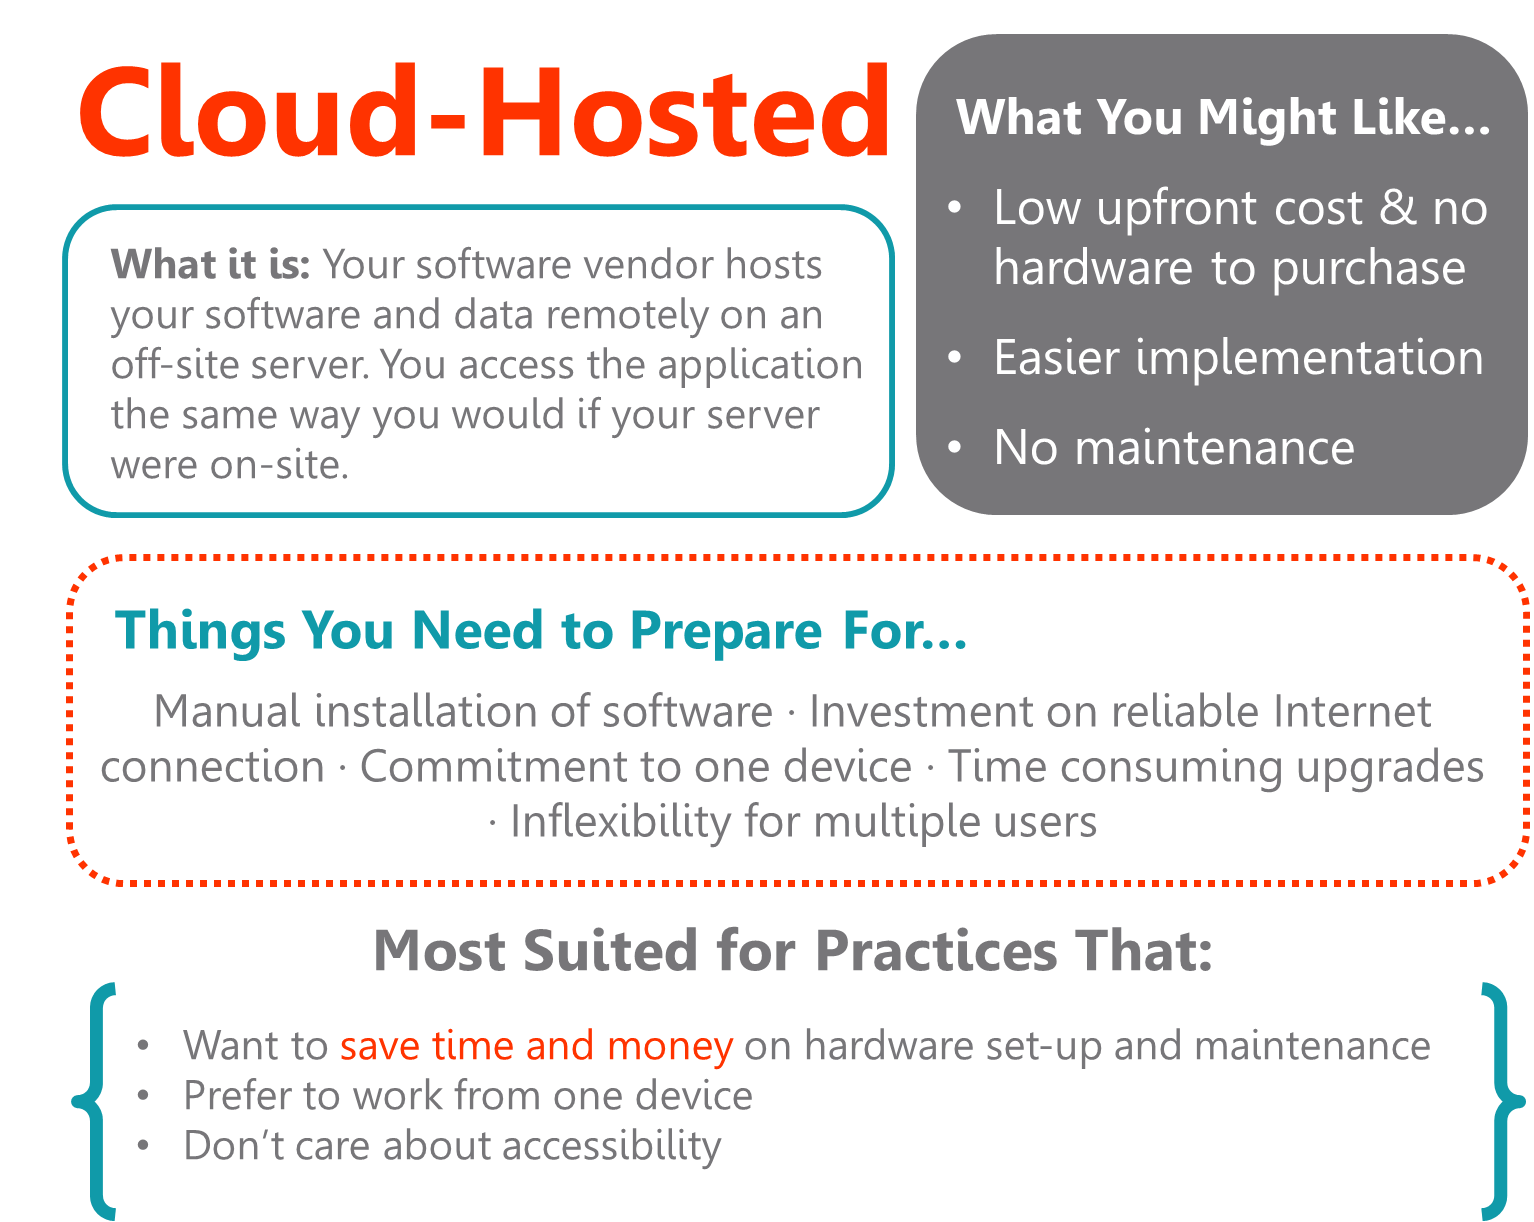 cloudhosted